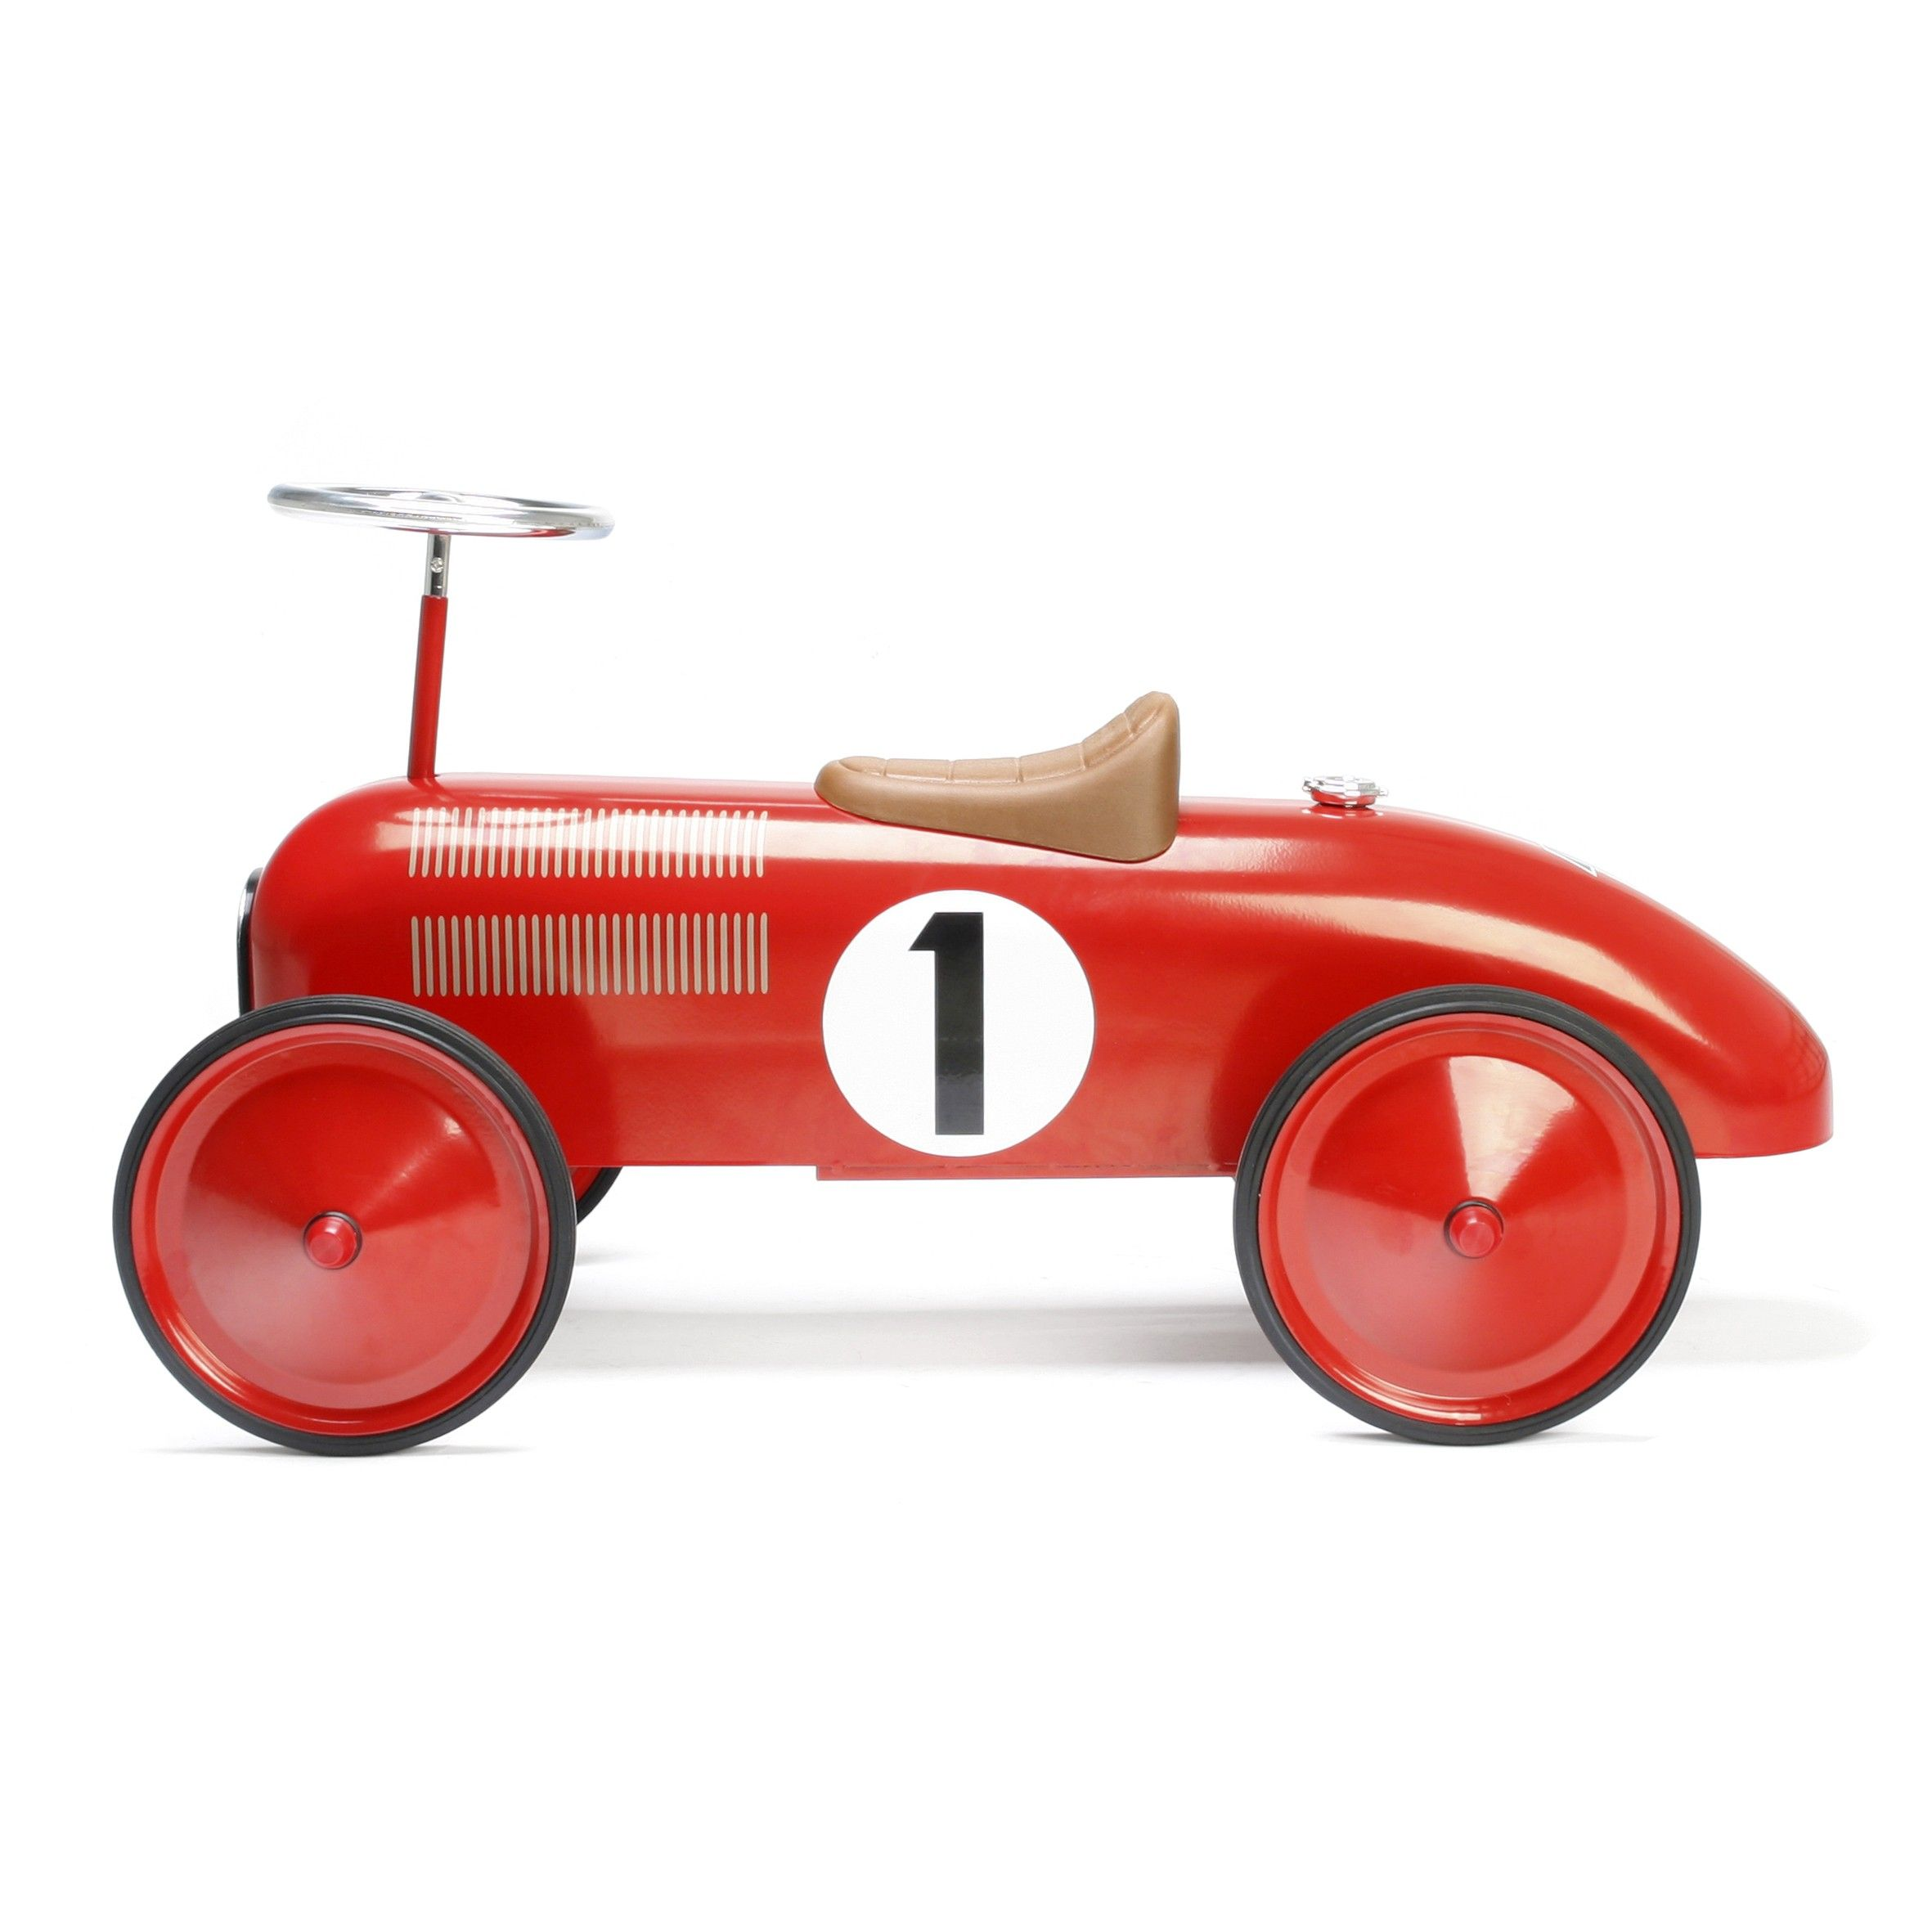 Toys cars for kids  Love this vintage look car   So Cute  Pinterest  Toy